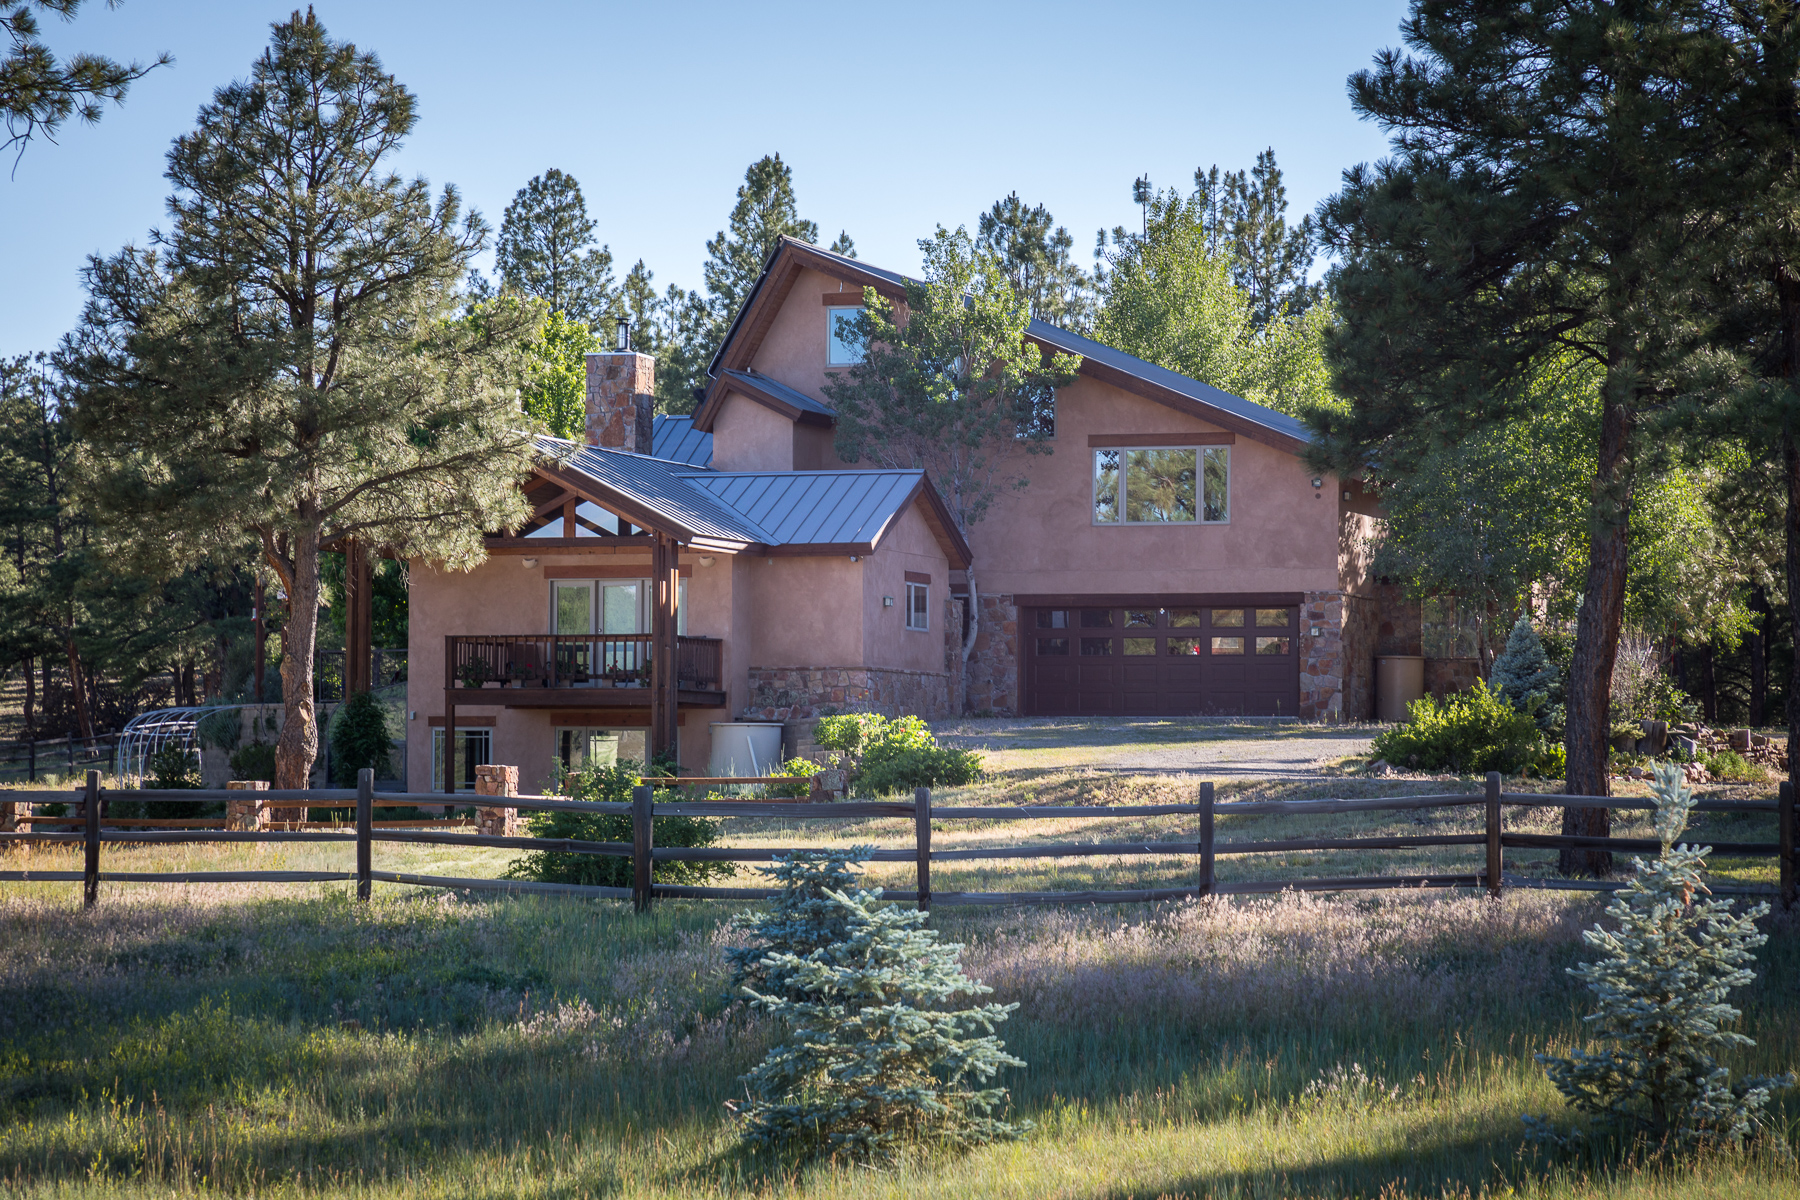 Casa Unifamiliar por un Venta en Peaceful Meadow Ranch 2415 Echo Canyon Ranch Lane Pagosa Springs, Colorado 81147 Estados Unidos